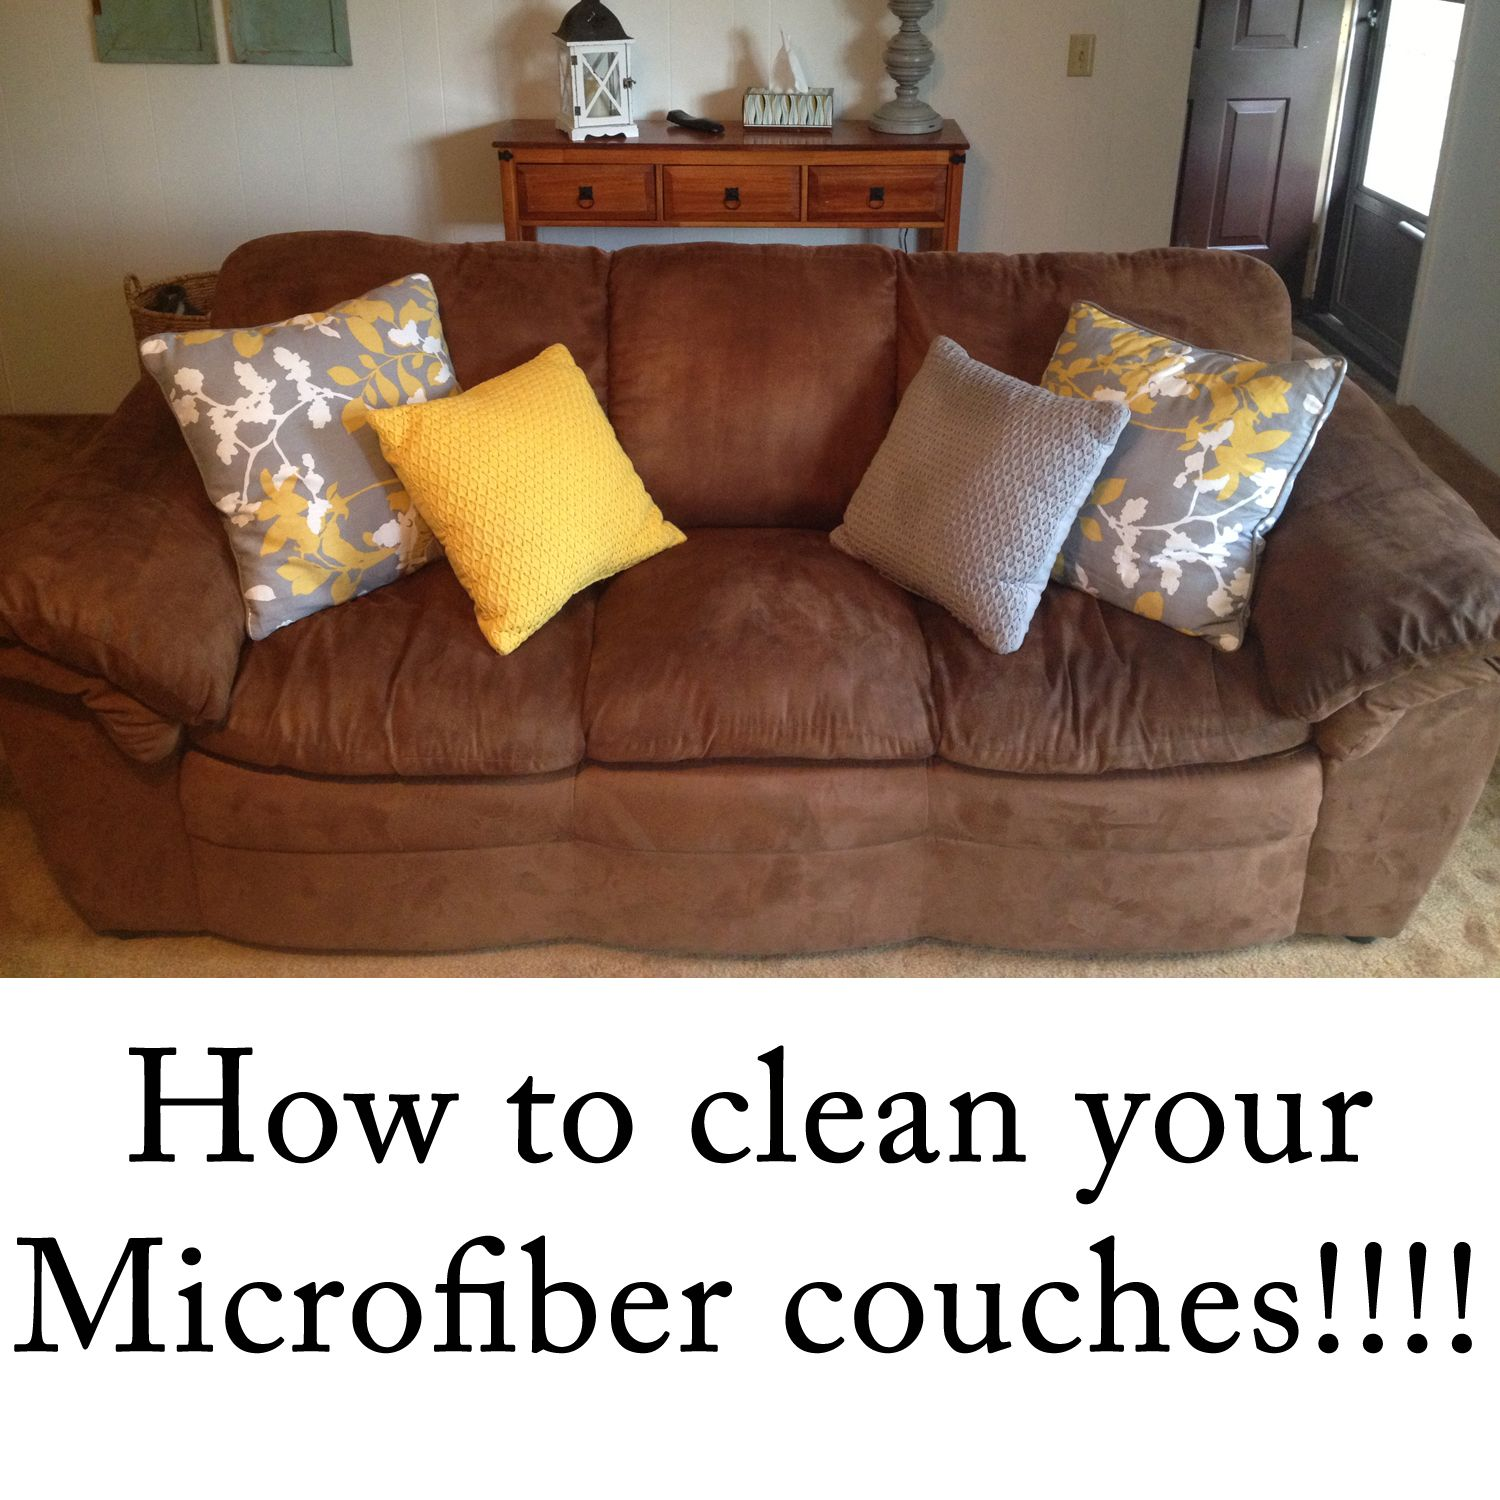 Sofa Set Cleaning: Microfiber Couch Cleaner---this Worked SOOOO Well. We Got